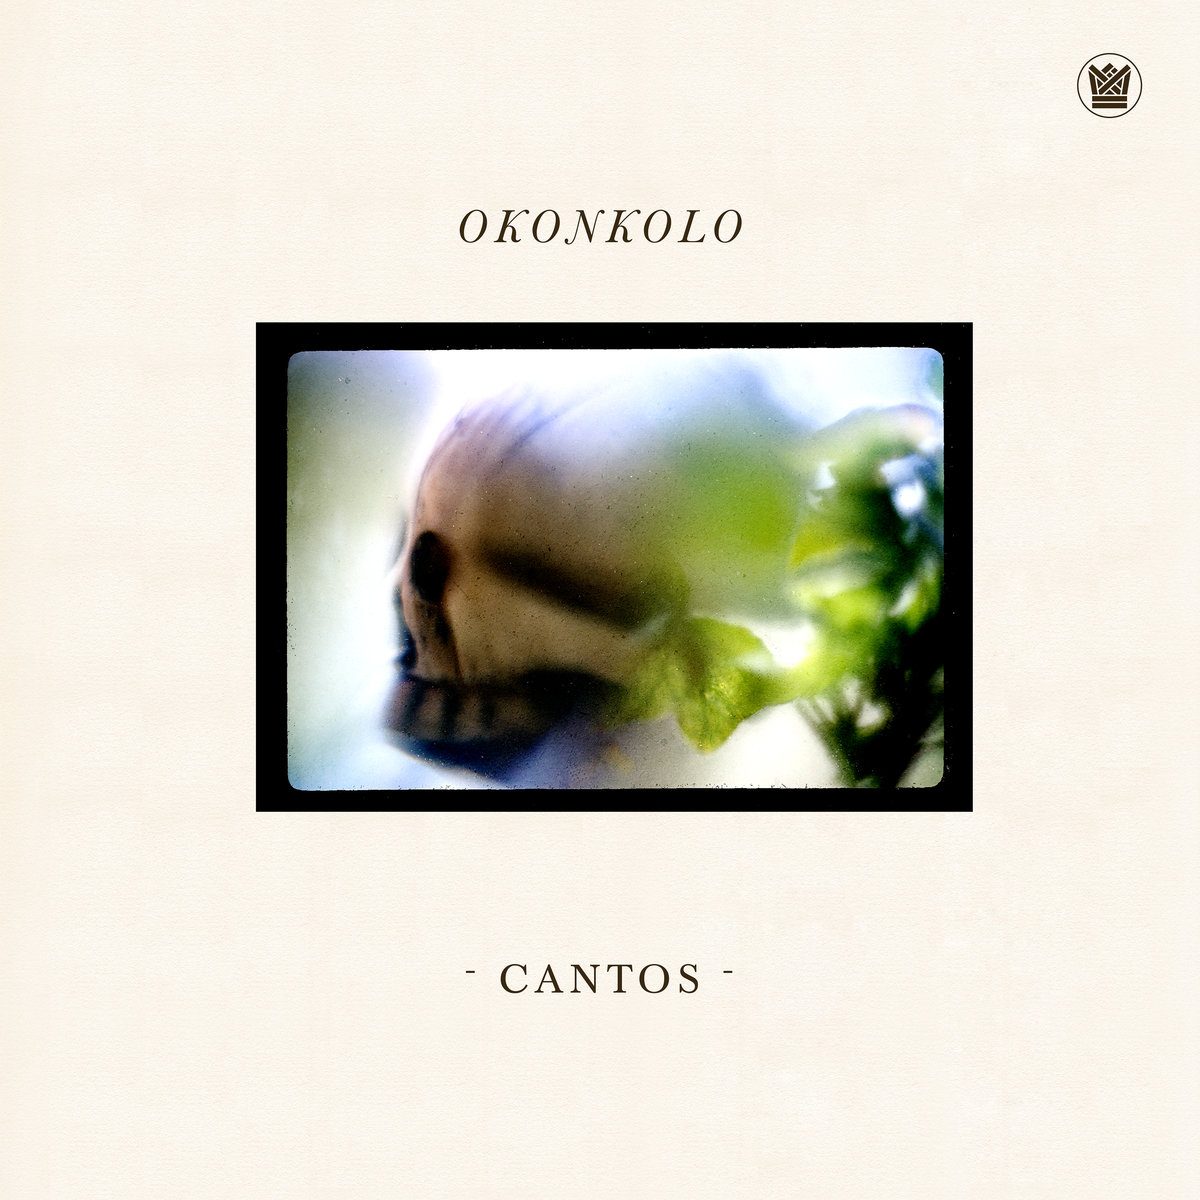 2. CantosOkonkolo - This album, released under Big Crown in July, came out of nowhere. Okonkolo is an afro-cuban god, and the musical group that now holds its namesake makes god-like music. The prayers that make up Okonkolo's debut album are some of the most complex and beautiful that any classical tradition has produced. They are also some of the oldest, which according to the group, address Obatala, the creator of the world, Ochun, the goddess of love and beauty, and Chango, God of the drum. This is a masterpiece in modern religious music. I don't say this lightly. I'm not religious. Rating: 8.5/10Stream on Spotify.Stream on Apple Music.